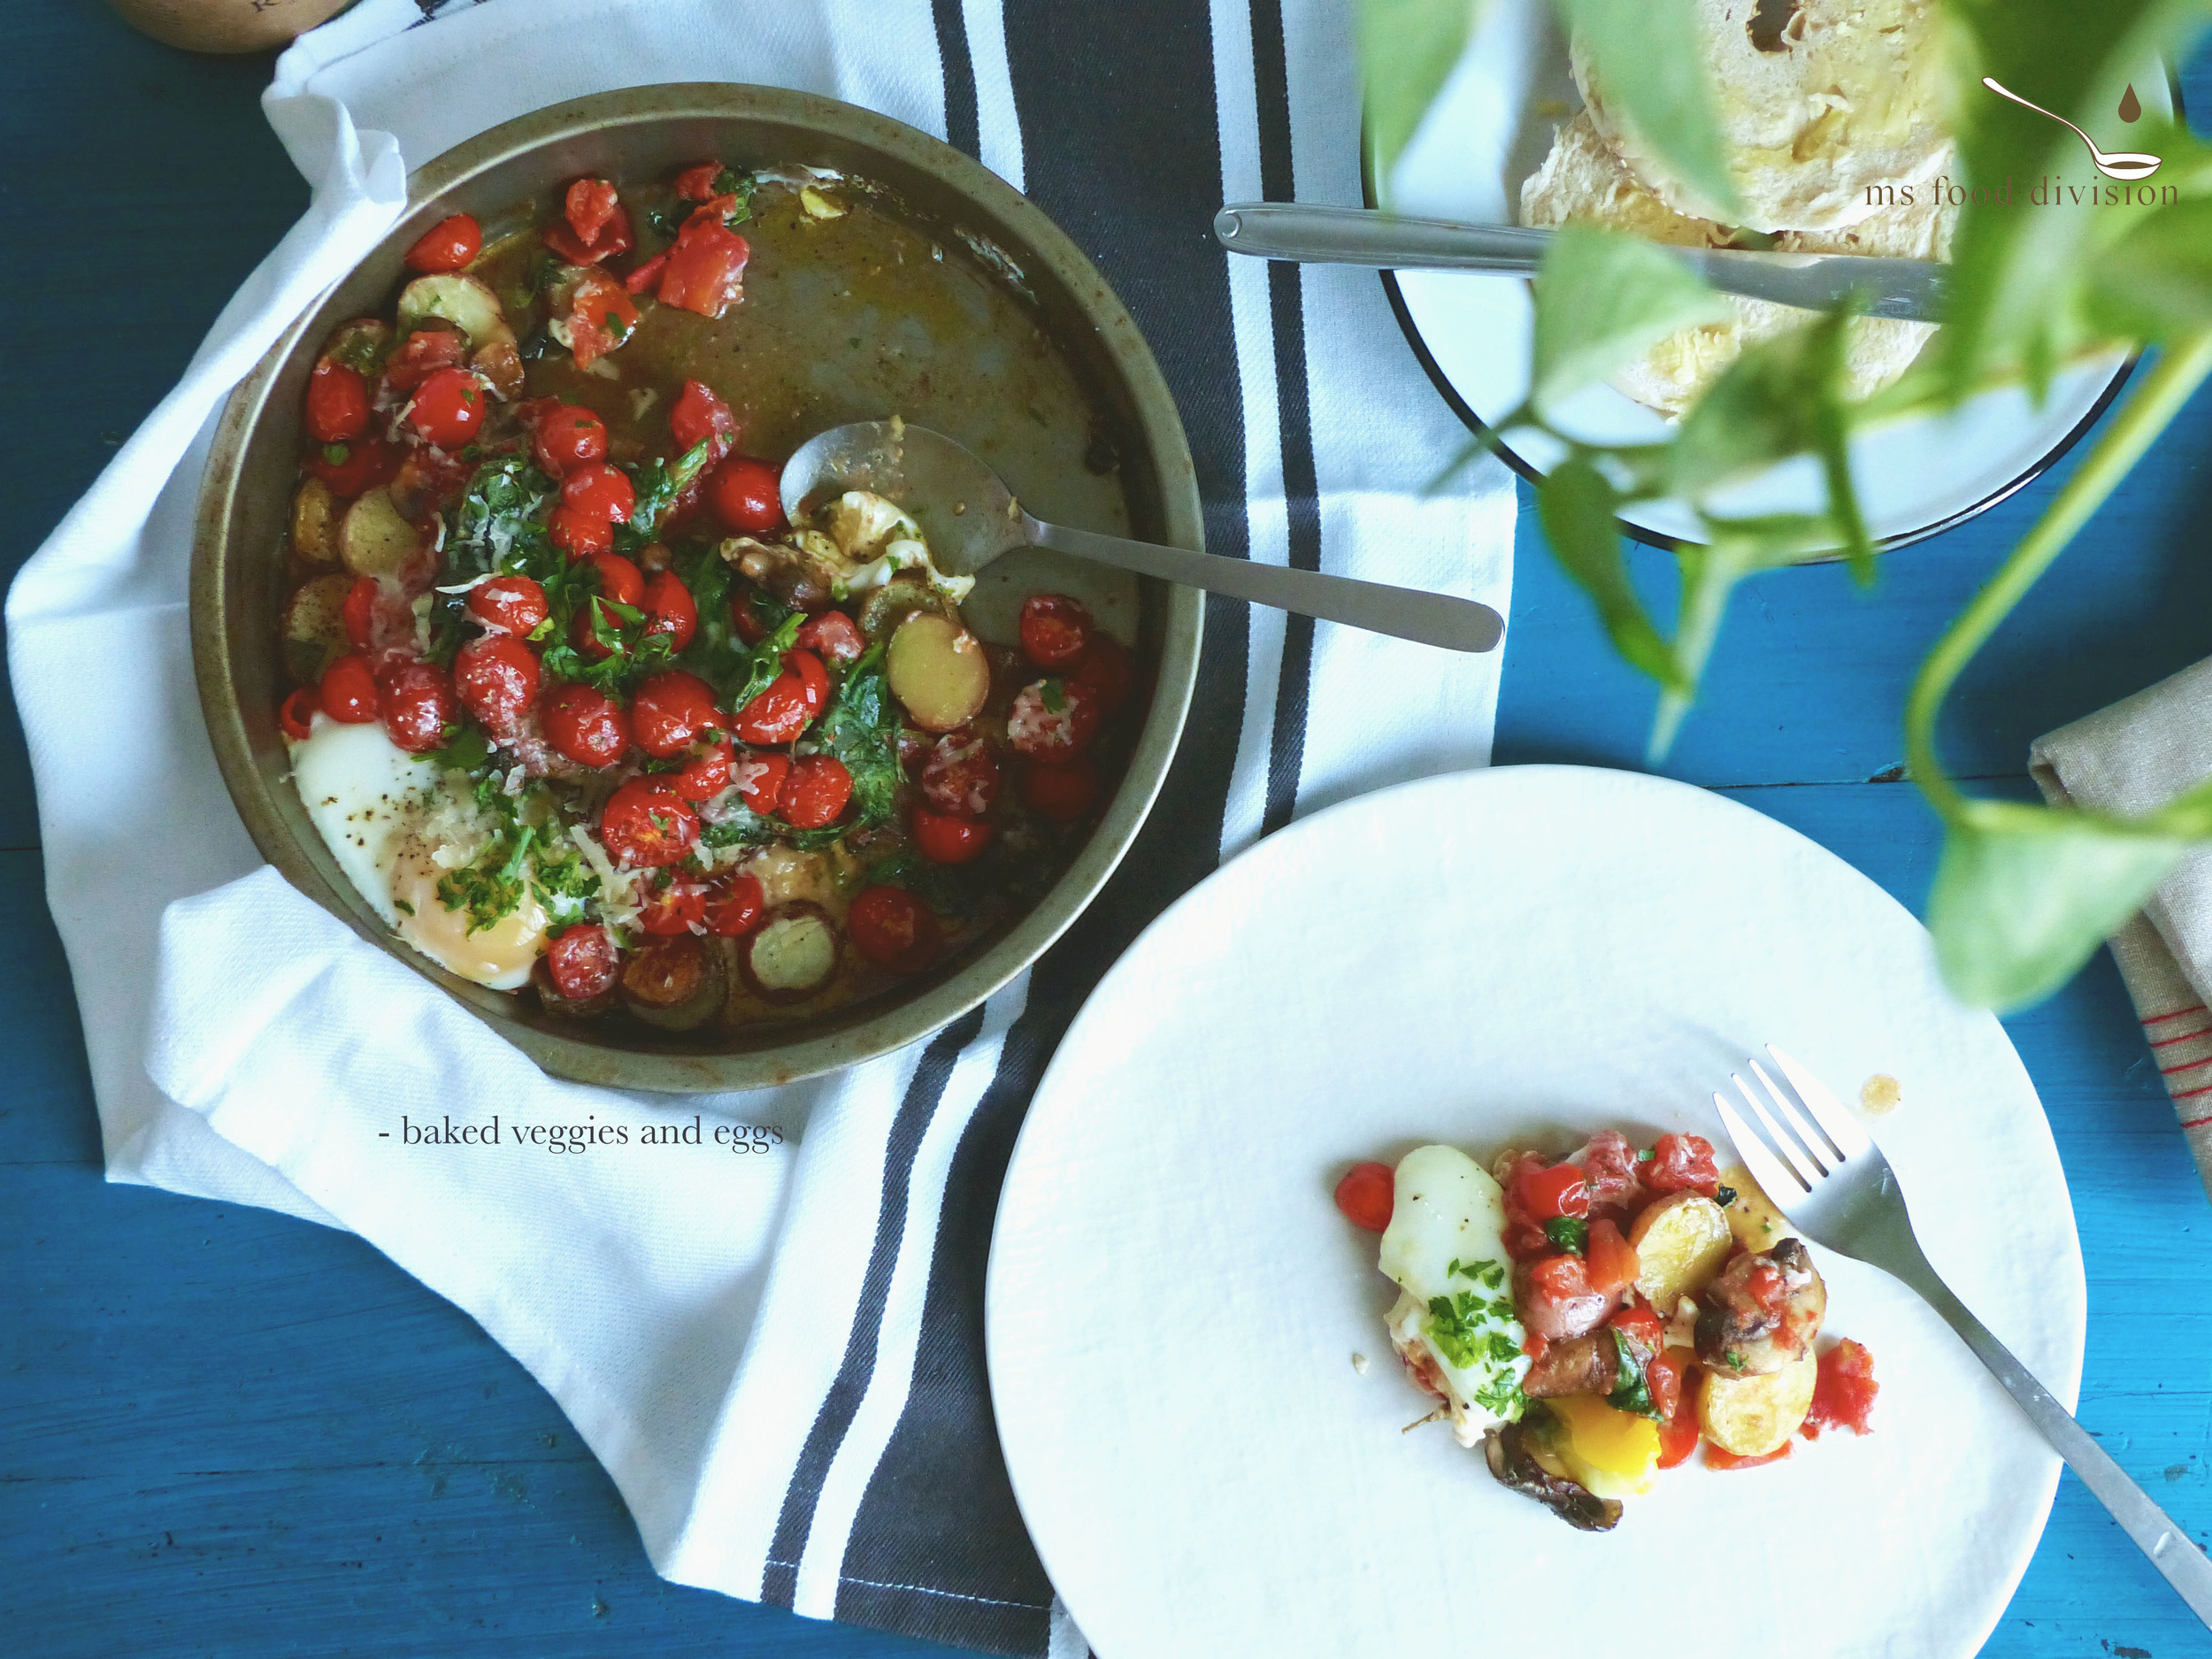 This dish is perfect for two persons.     Ingredients:    5-6 small potatoes, cut in edible sizes as you like  a handful of cherry tomatoes, halved  a bowl of spinach  5-6 leftover mushrooms, chopped   a handful of fresh parsley  1/2 can of diced tomato, dilute it with 1/4 cup of water  2 eggs  2 cloves of garlic, chopped  1/4 glass of white wine  grated parmesan  a sprig of sage, chopped  extra-virgin olive oil   Instructions:  1) Preheat the oven at 380°F  2) Drizzle some oil on the baking tray, add potatoes, sage, and season  3) Heat up a frying pan with oil, add garlic, let it cook for a couple minutes in medium heat  4) Add mushrooms and a splash of white wine; cook for 3-5 minutes  5) Add spinach and cook for less than a minute, season and set aside  6) Remove the potatoes from the oven after 15 minutes and add the cooked mushroom and spinach on to potatoes 7) Add the watery chopped tomatoes with the fresh cherry tomatoes and return to bake in the oven for another 10 minutes; season  8) Crack two eggs on top of the veggies, season, and bake for another 5 minutes.  9) Garnish with parmesan and fresh parsley and ready to serve.